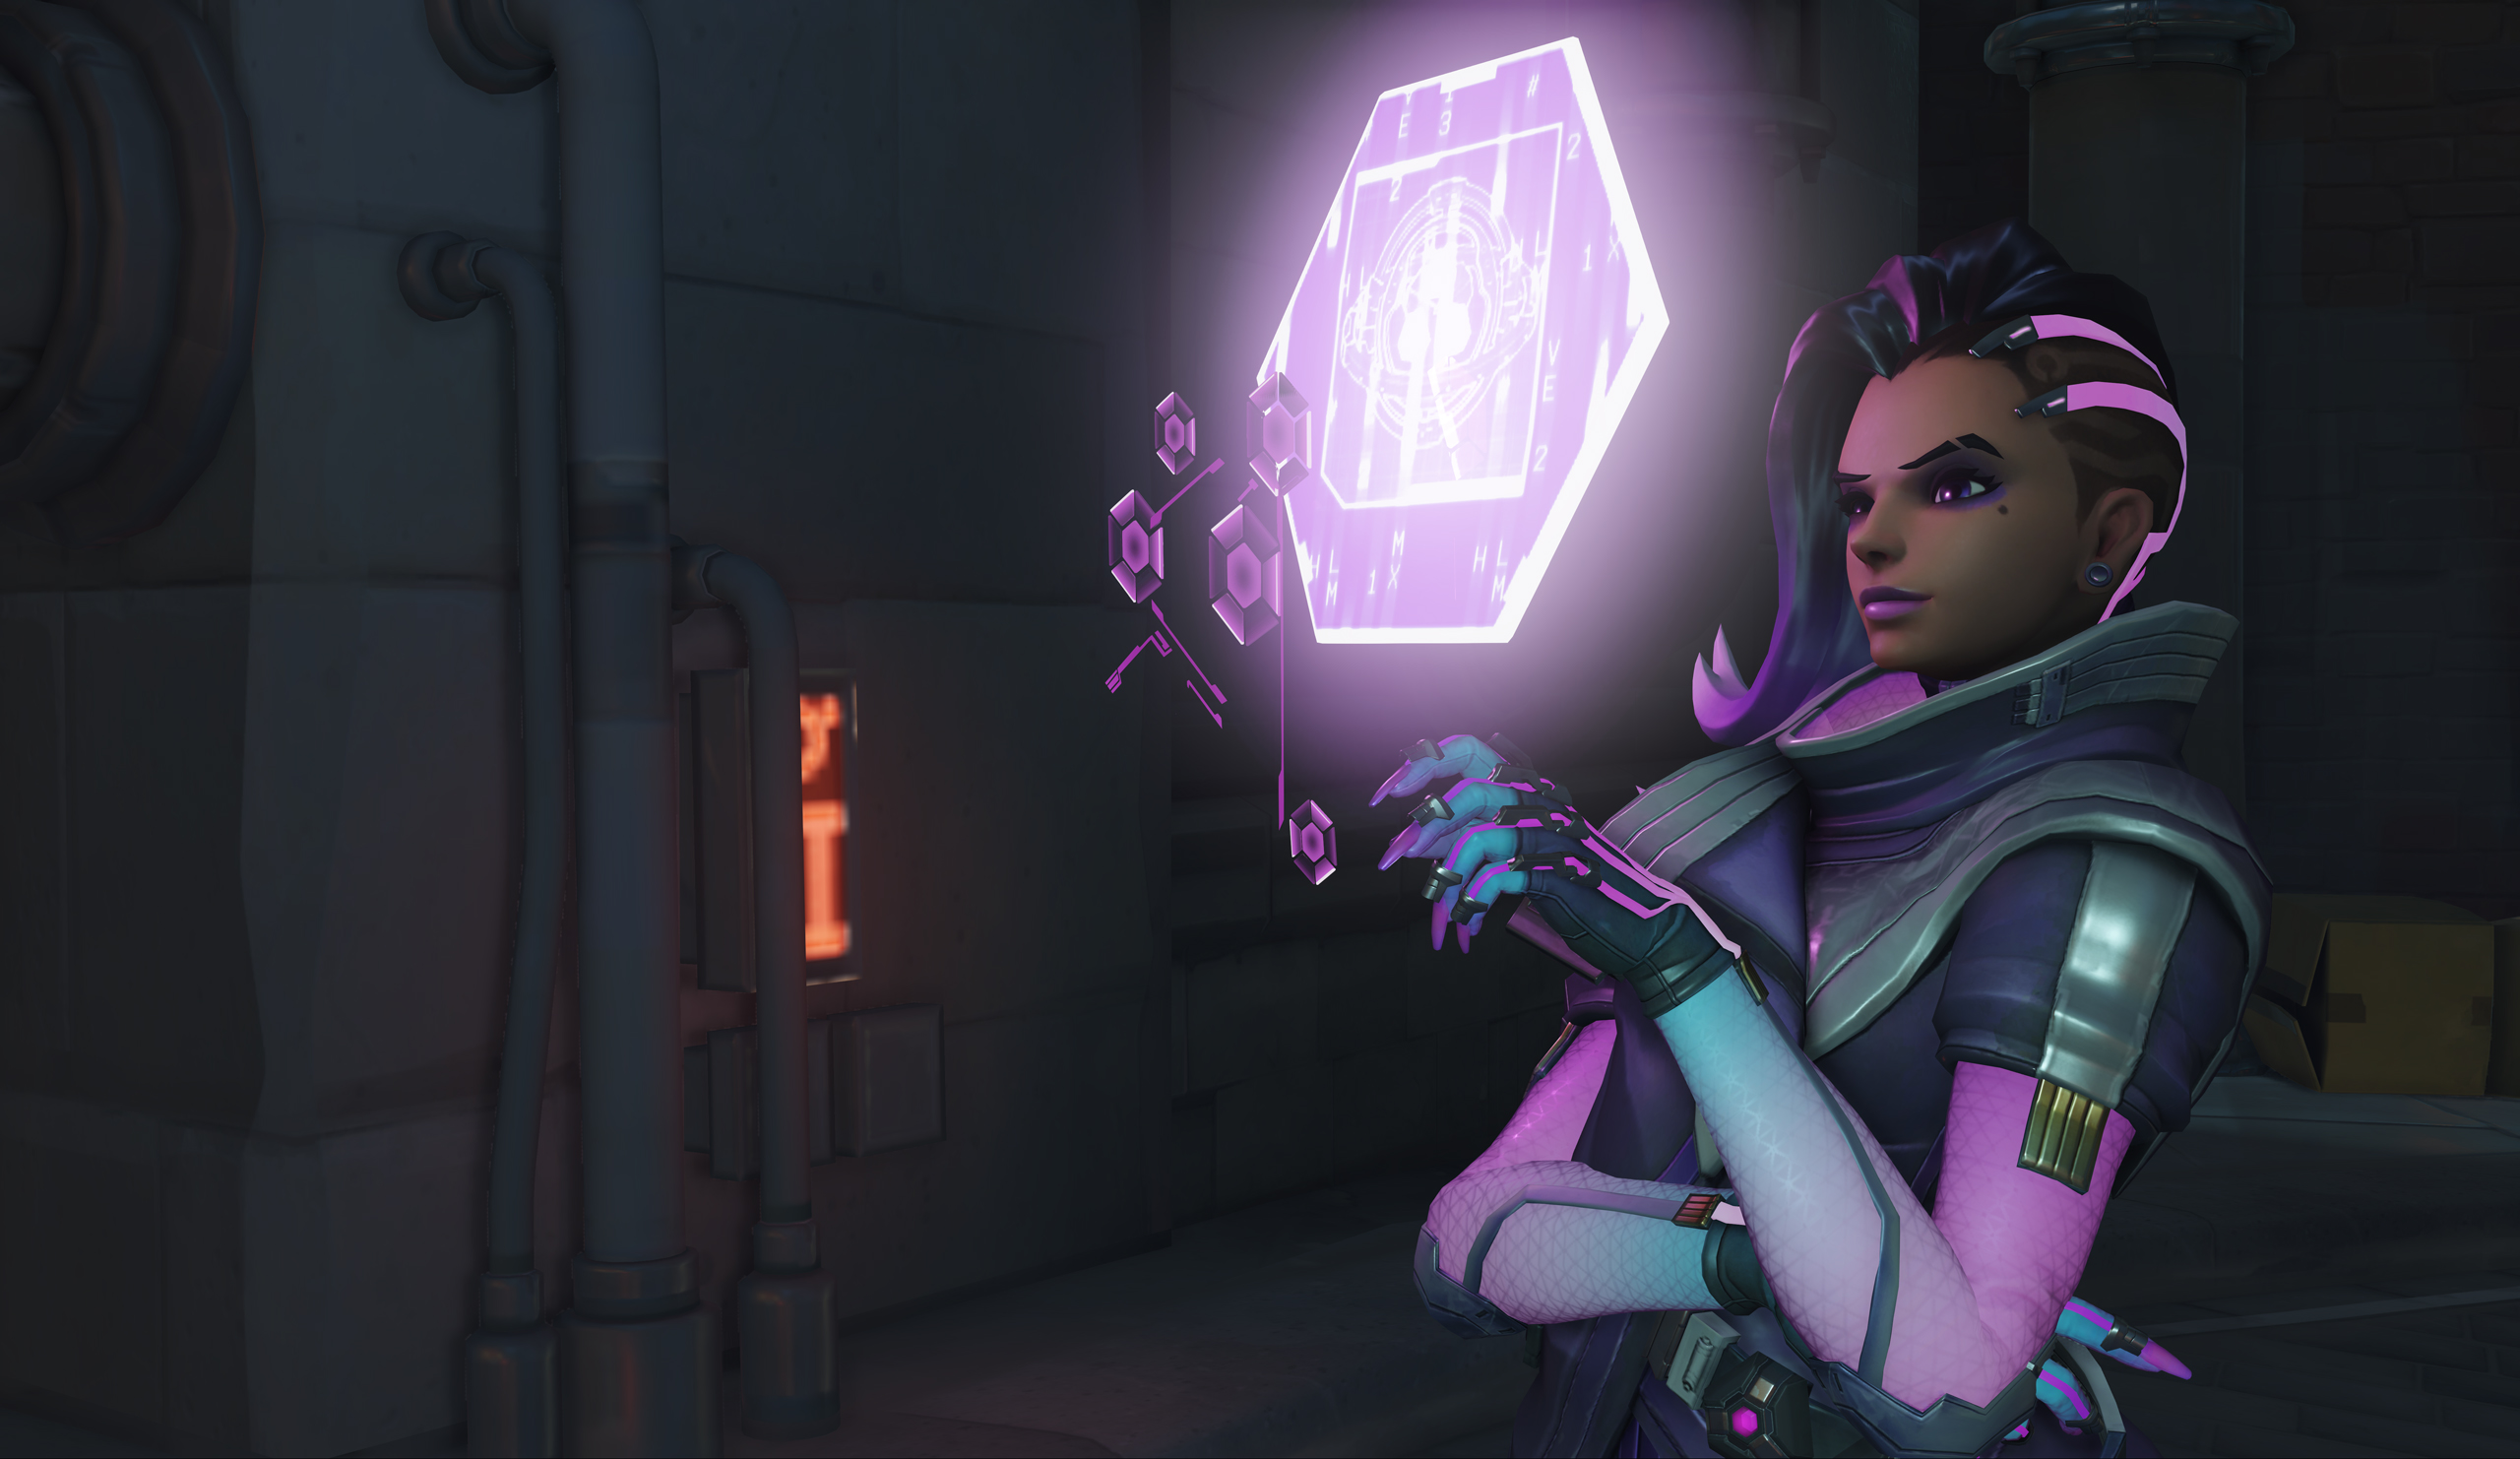 sombra screenshot 004 98902ef5e7531f41d68499004e75ed7aa81e5716bca6575795e5001e42fef159d85383ae7d84ea2cc48068571c602e70b5dbe28d8ceee41116c092ab4c224471 - This article is brought to you byStatBanana, the best Overwatch strategy tool. - Free Game Hacks